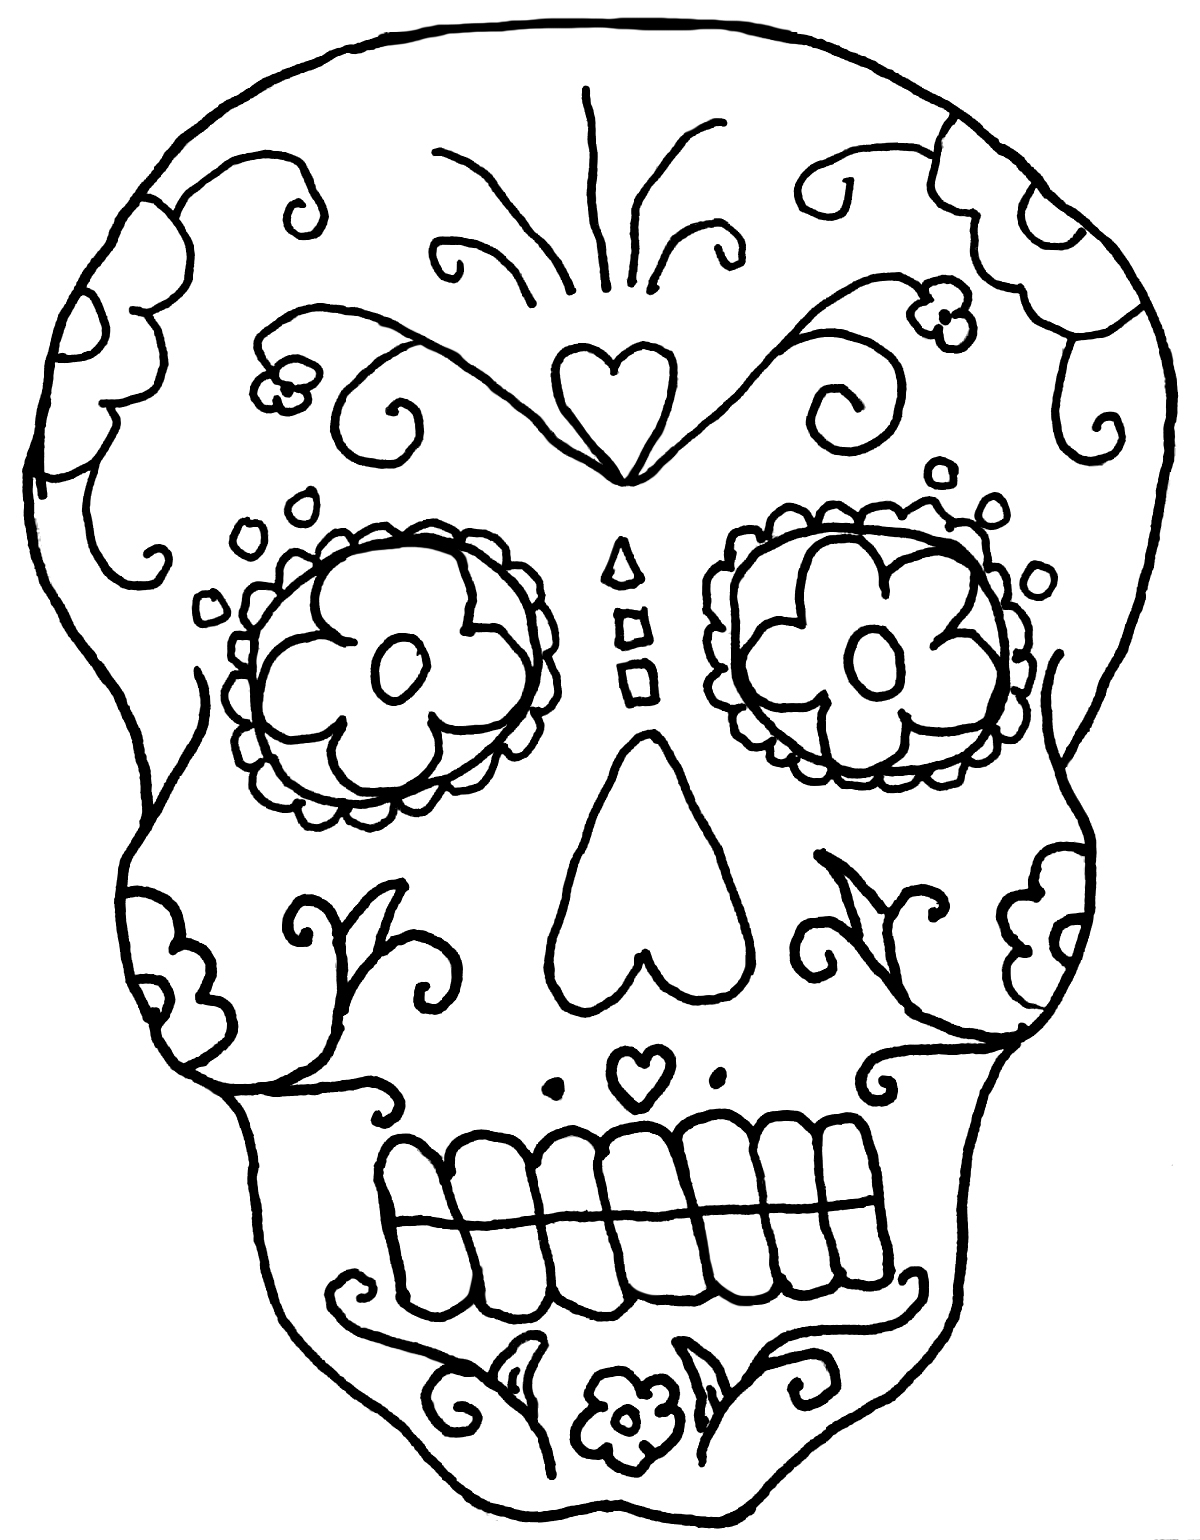 - 21+ Best Photo Of Day Of The Dead Coloring Pages - Birijus.com